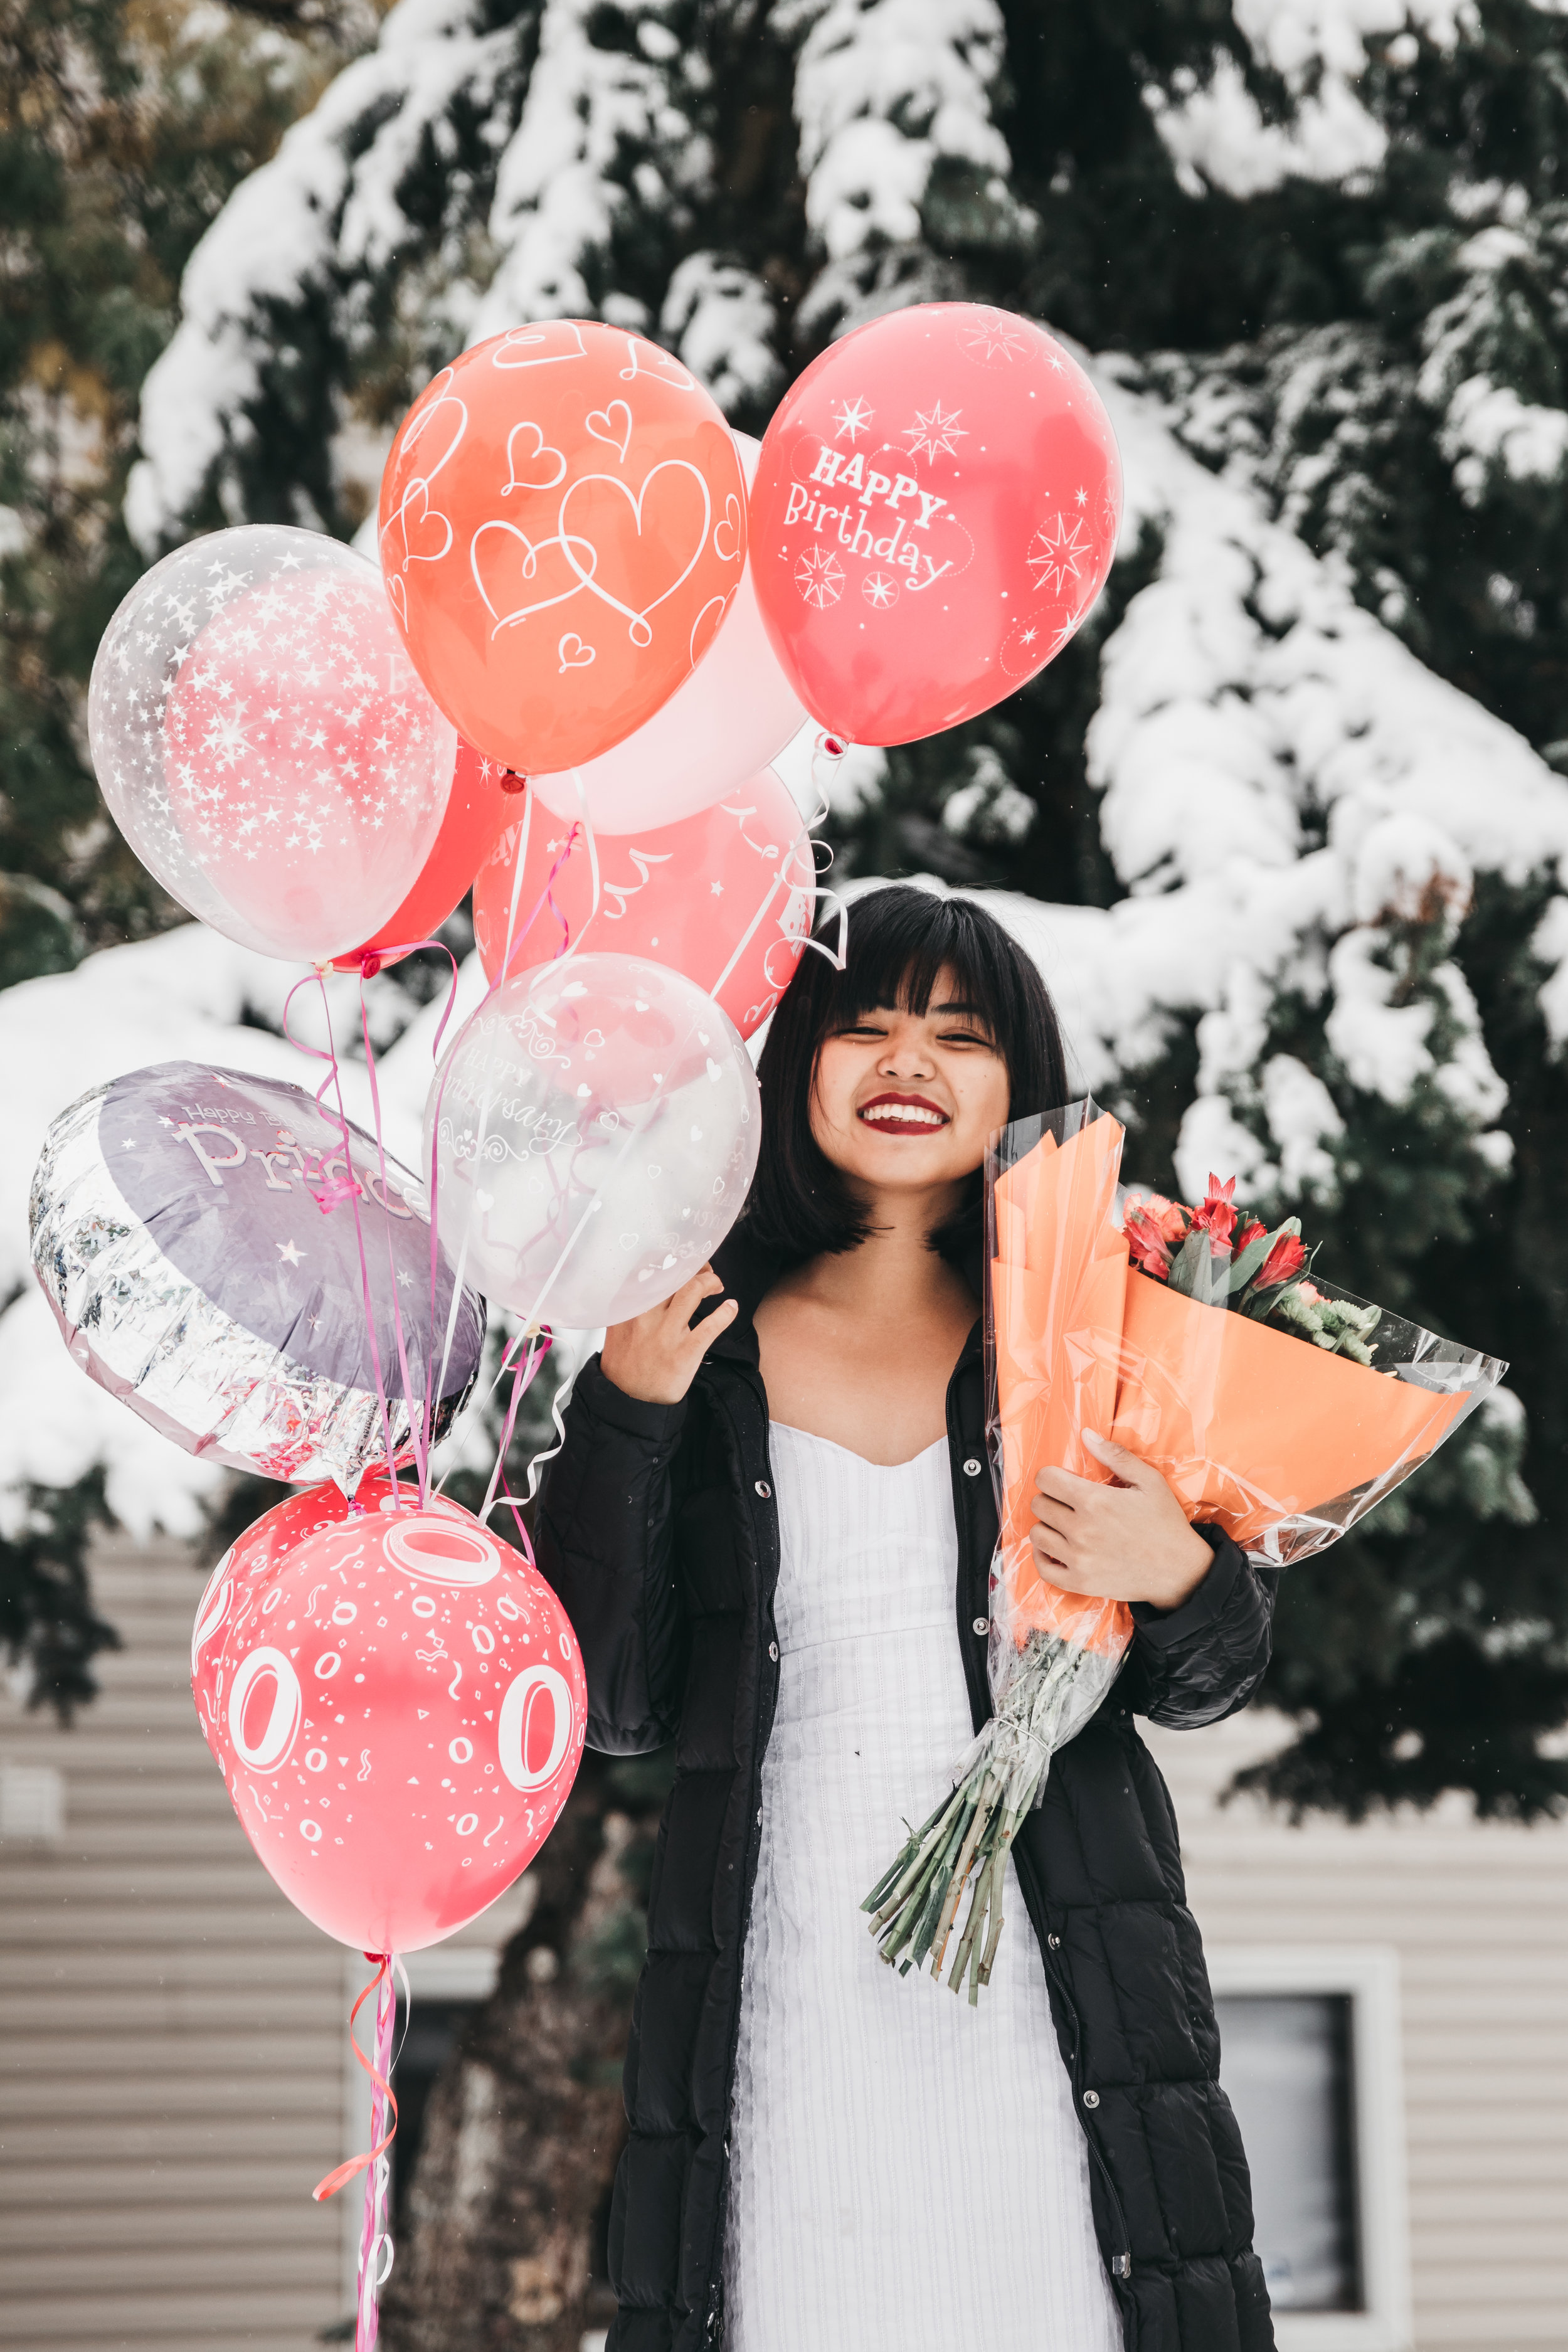 How To Kickstart Your 20s | Growing Up Girlboss | Lifestyle & Personal Development Blog Nicole Constante